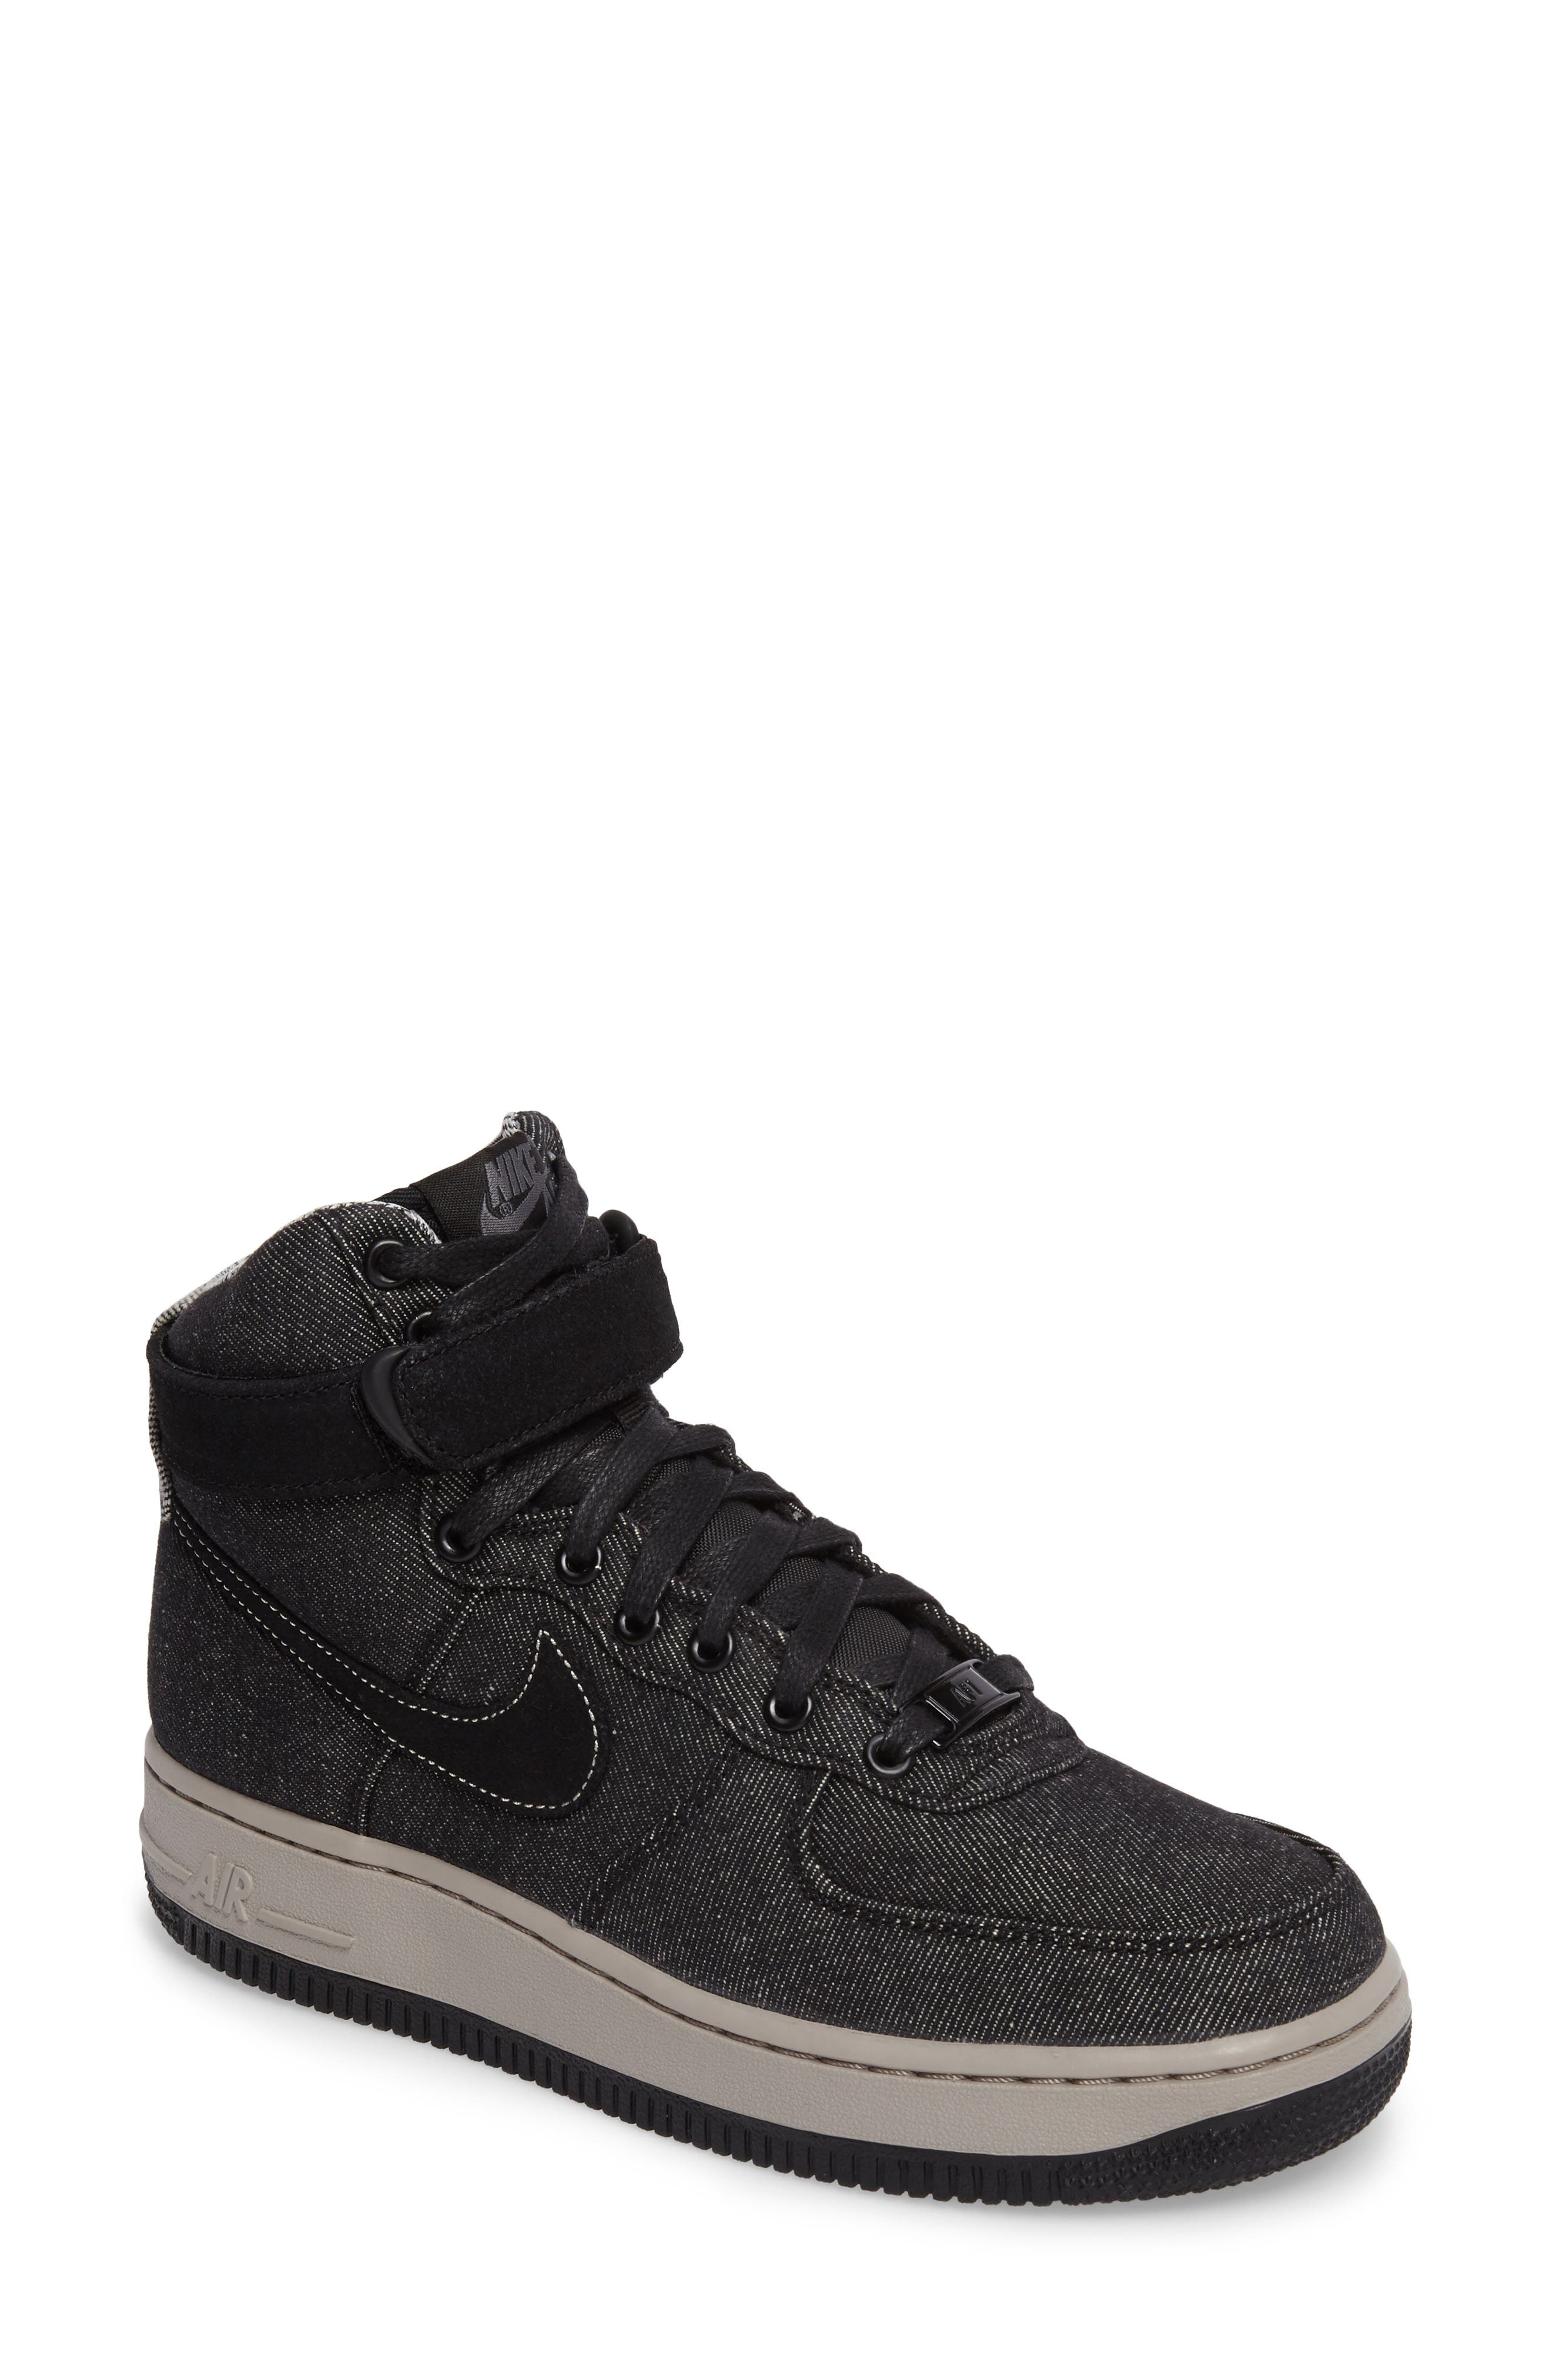 Nike Air Force 1 High Top SE Sneaker (Women)